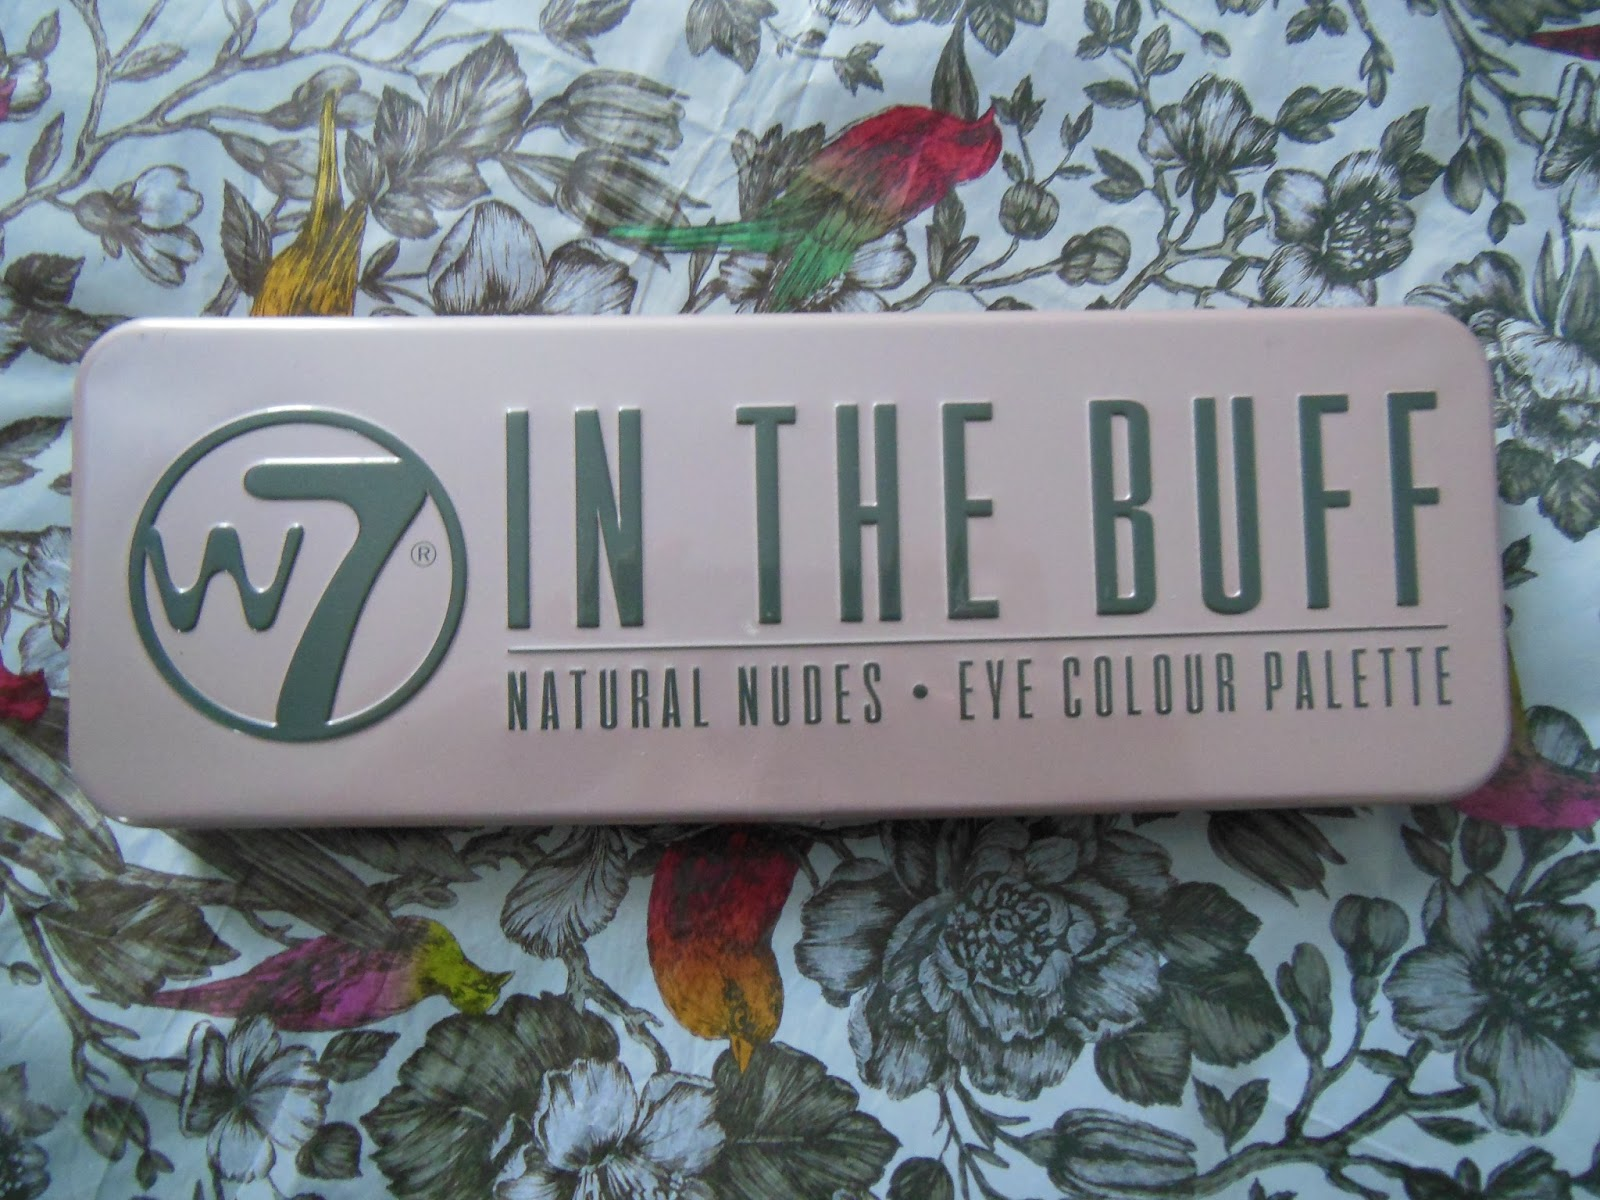 W7 in the buff eye shadow palette